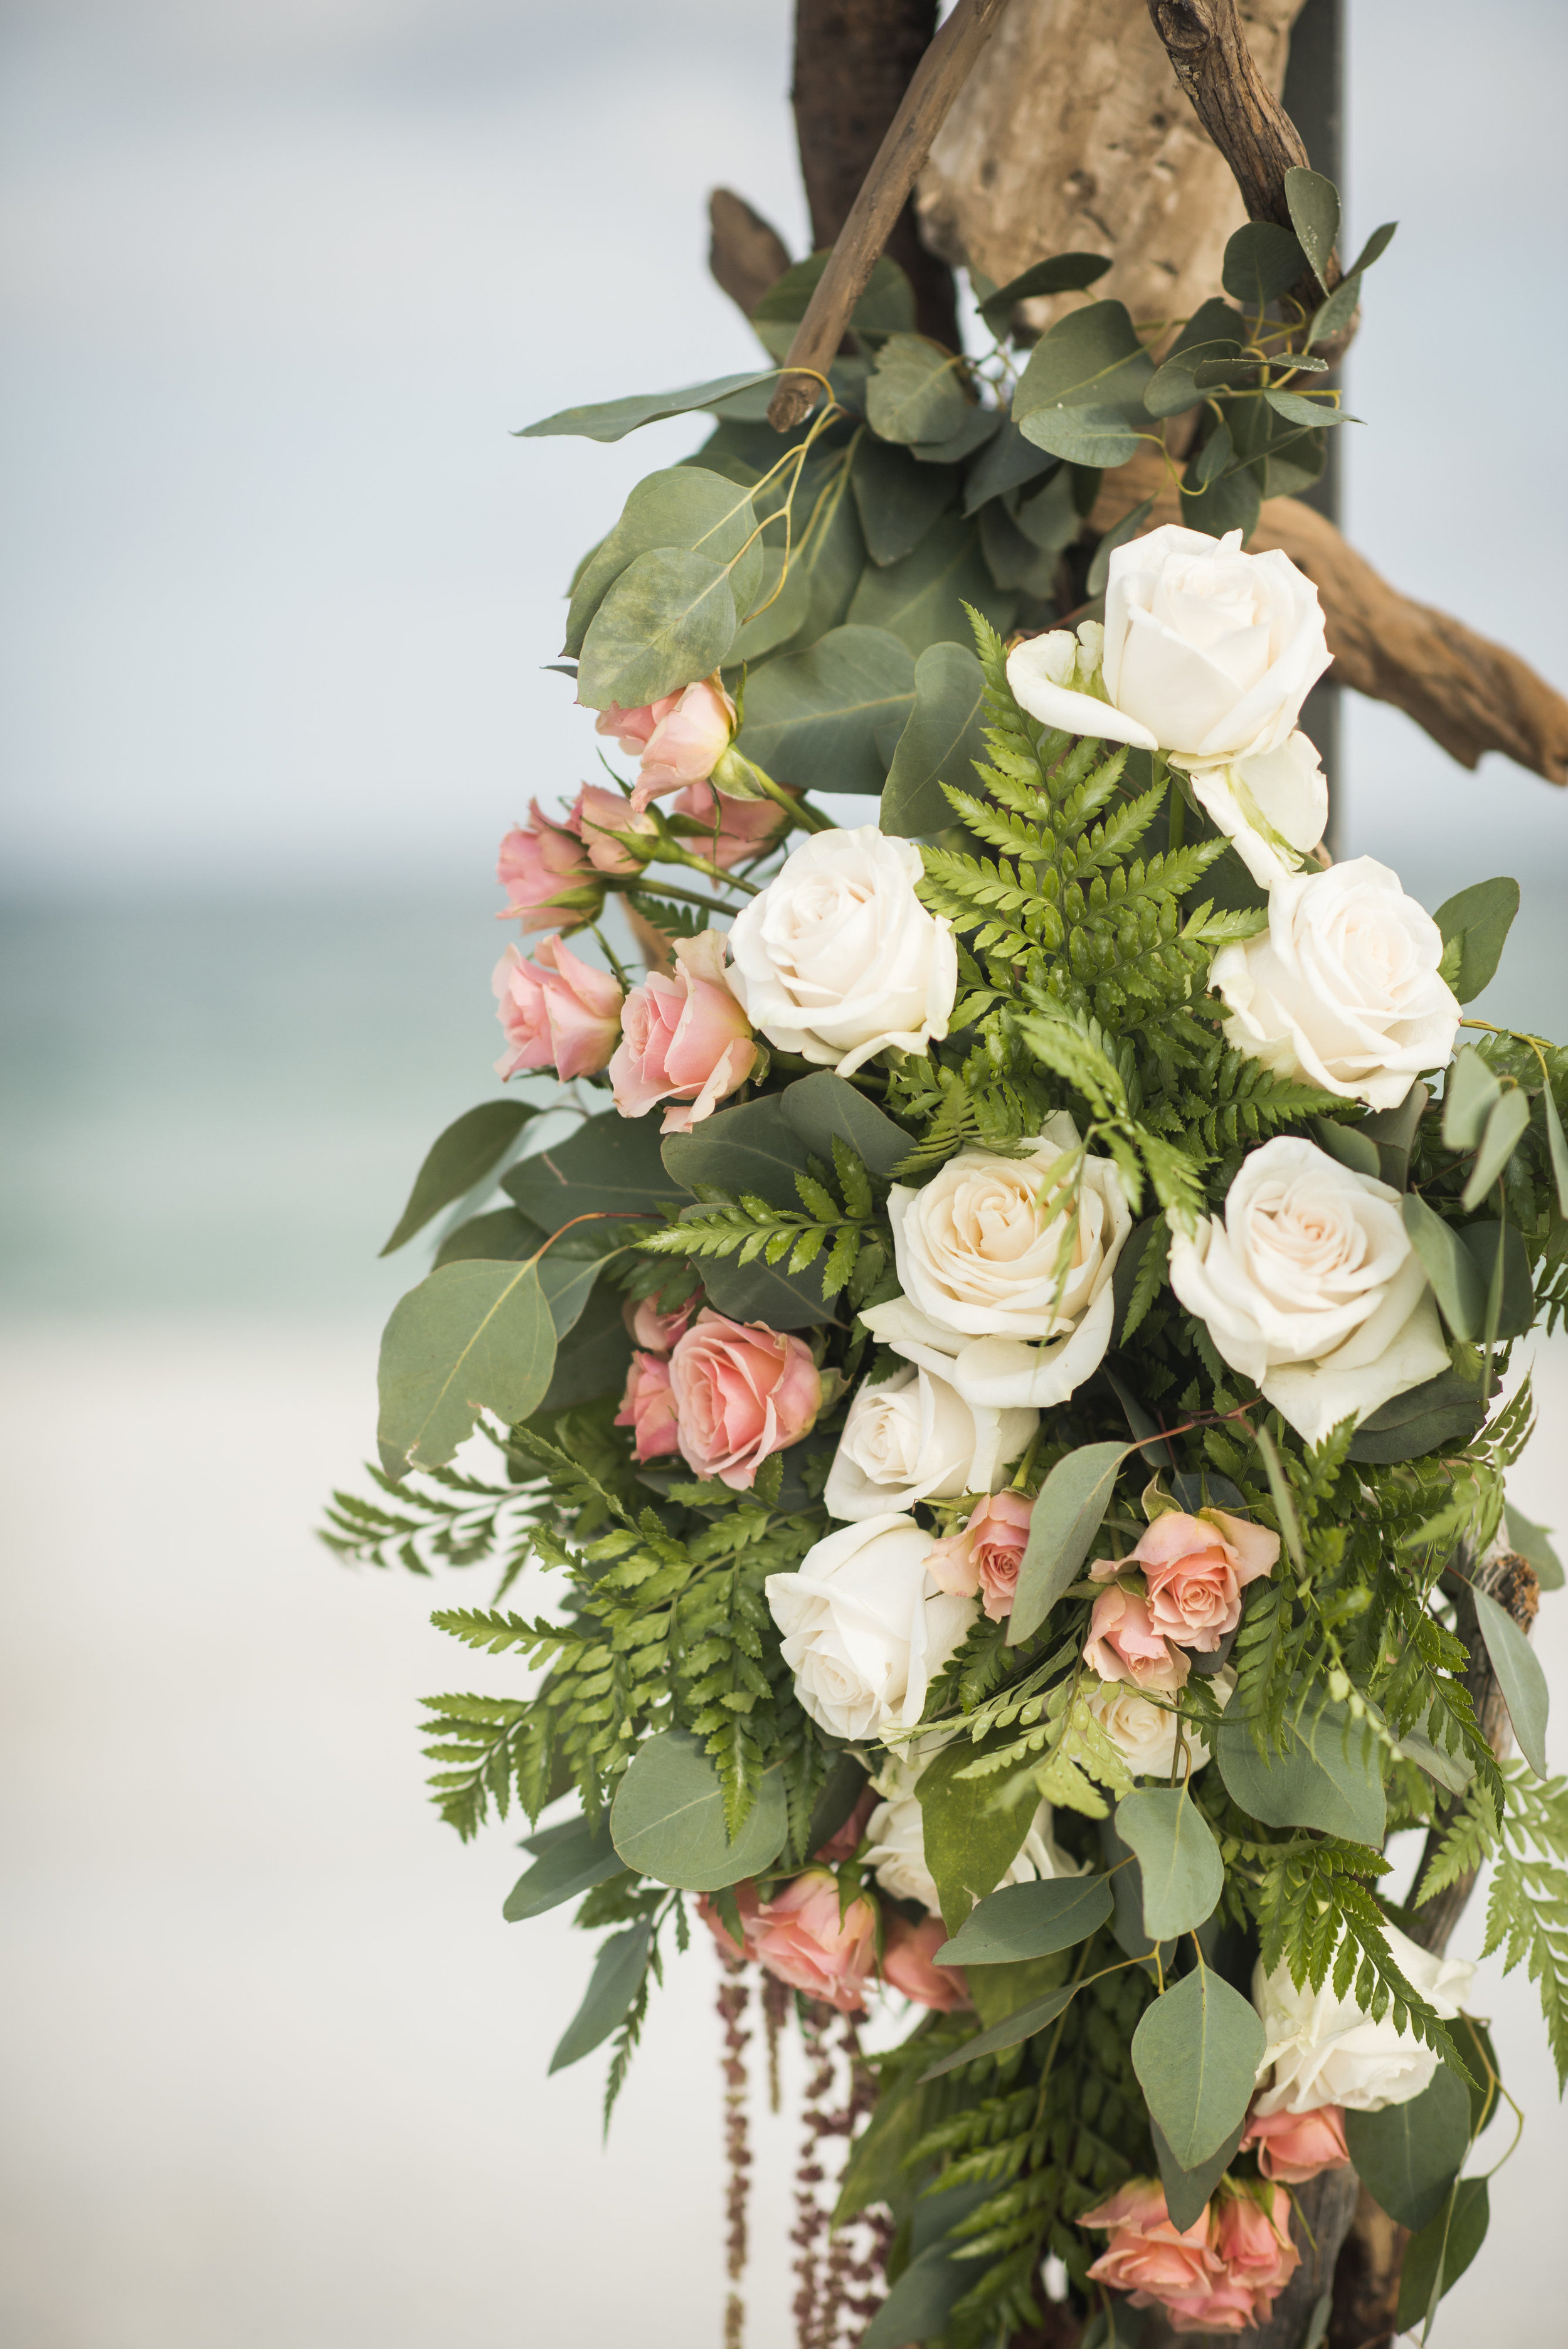 Driftwood Arch by Fiore of Pensacola - Pensacola Beach Wedding by Grace and Serendipity + Aislinn Kate Photography